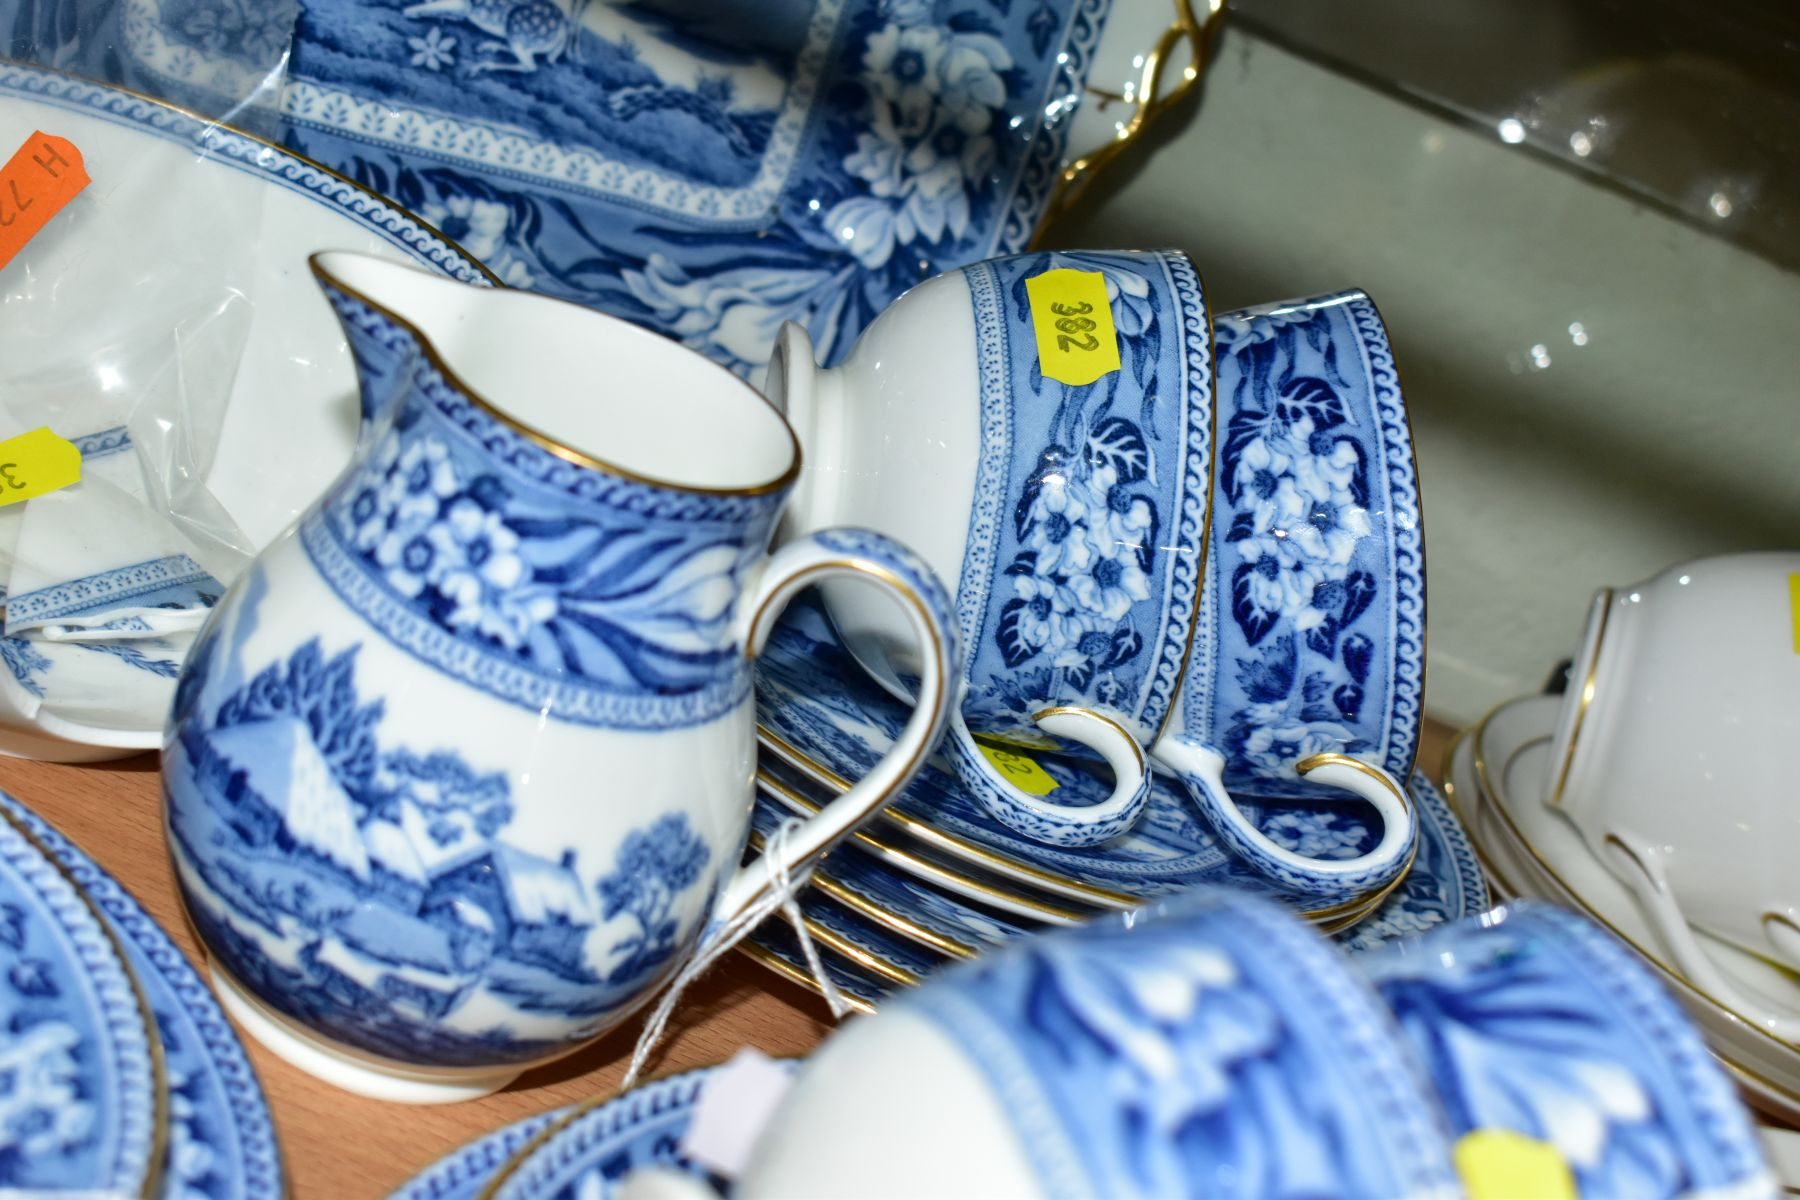 AN EARLY 20TH CENTURY WEDGWOOD BONE CHINA BLUE AND WHITE FALLOW DEER PATTERN PART TEA SET, brown - Image 5 of 6